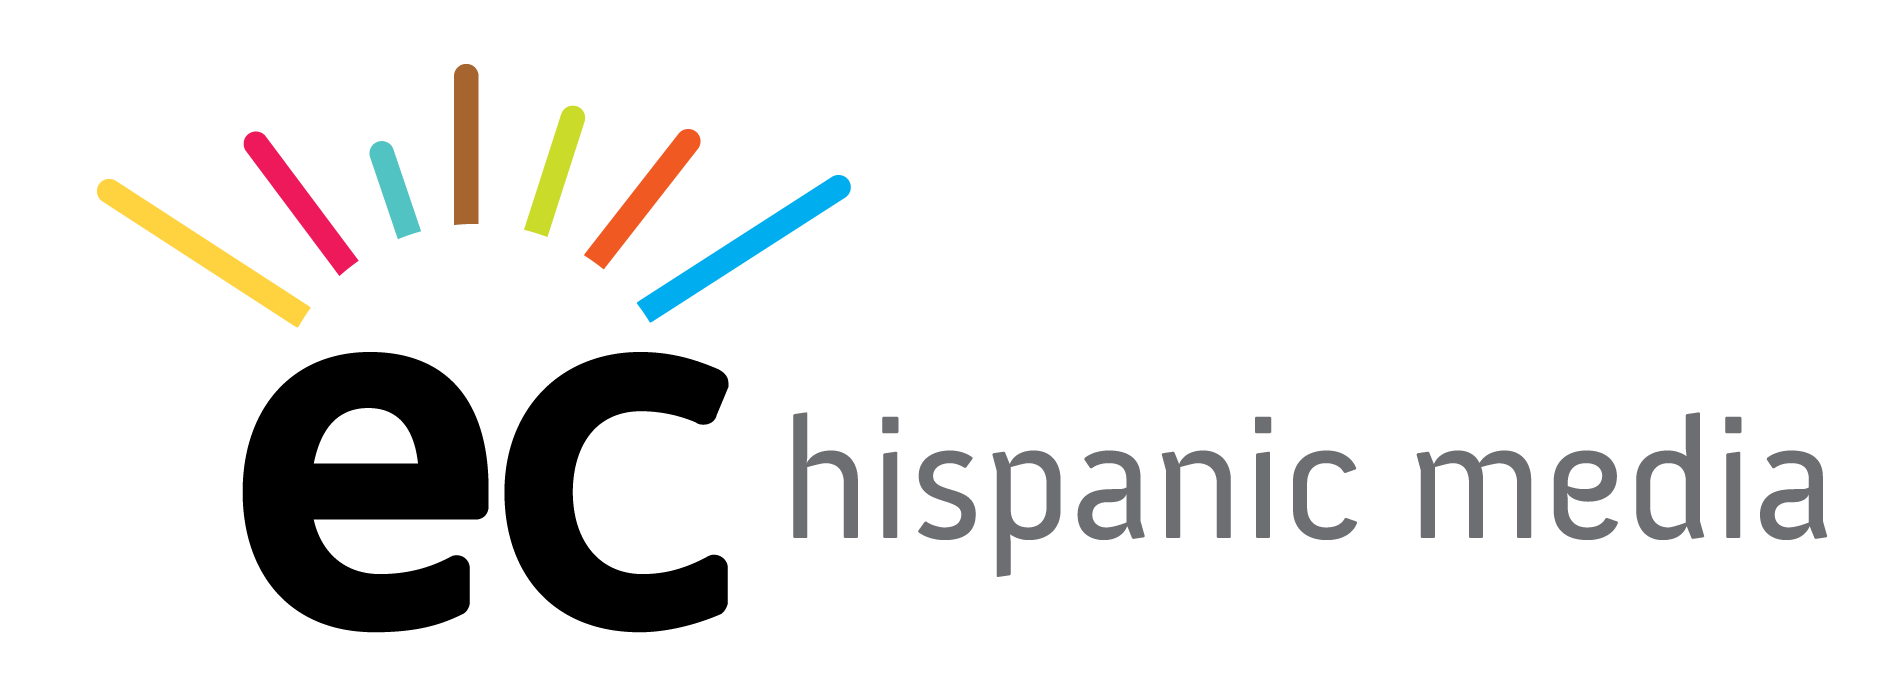 EC Hispanic Media